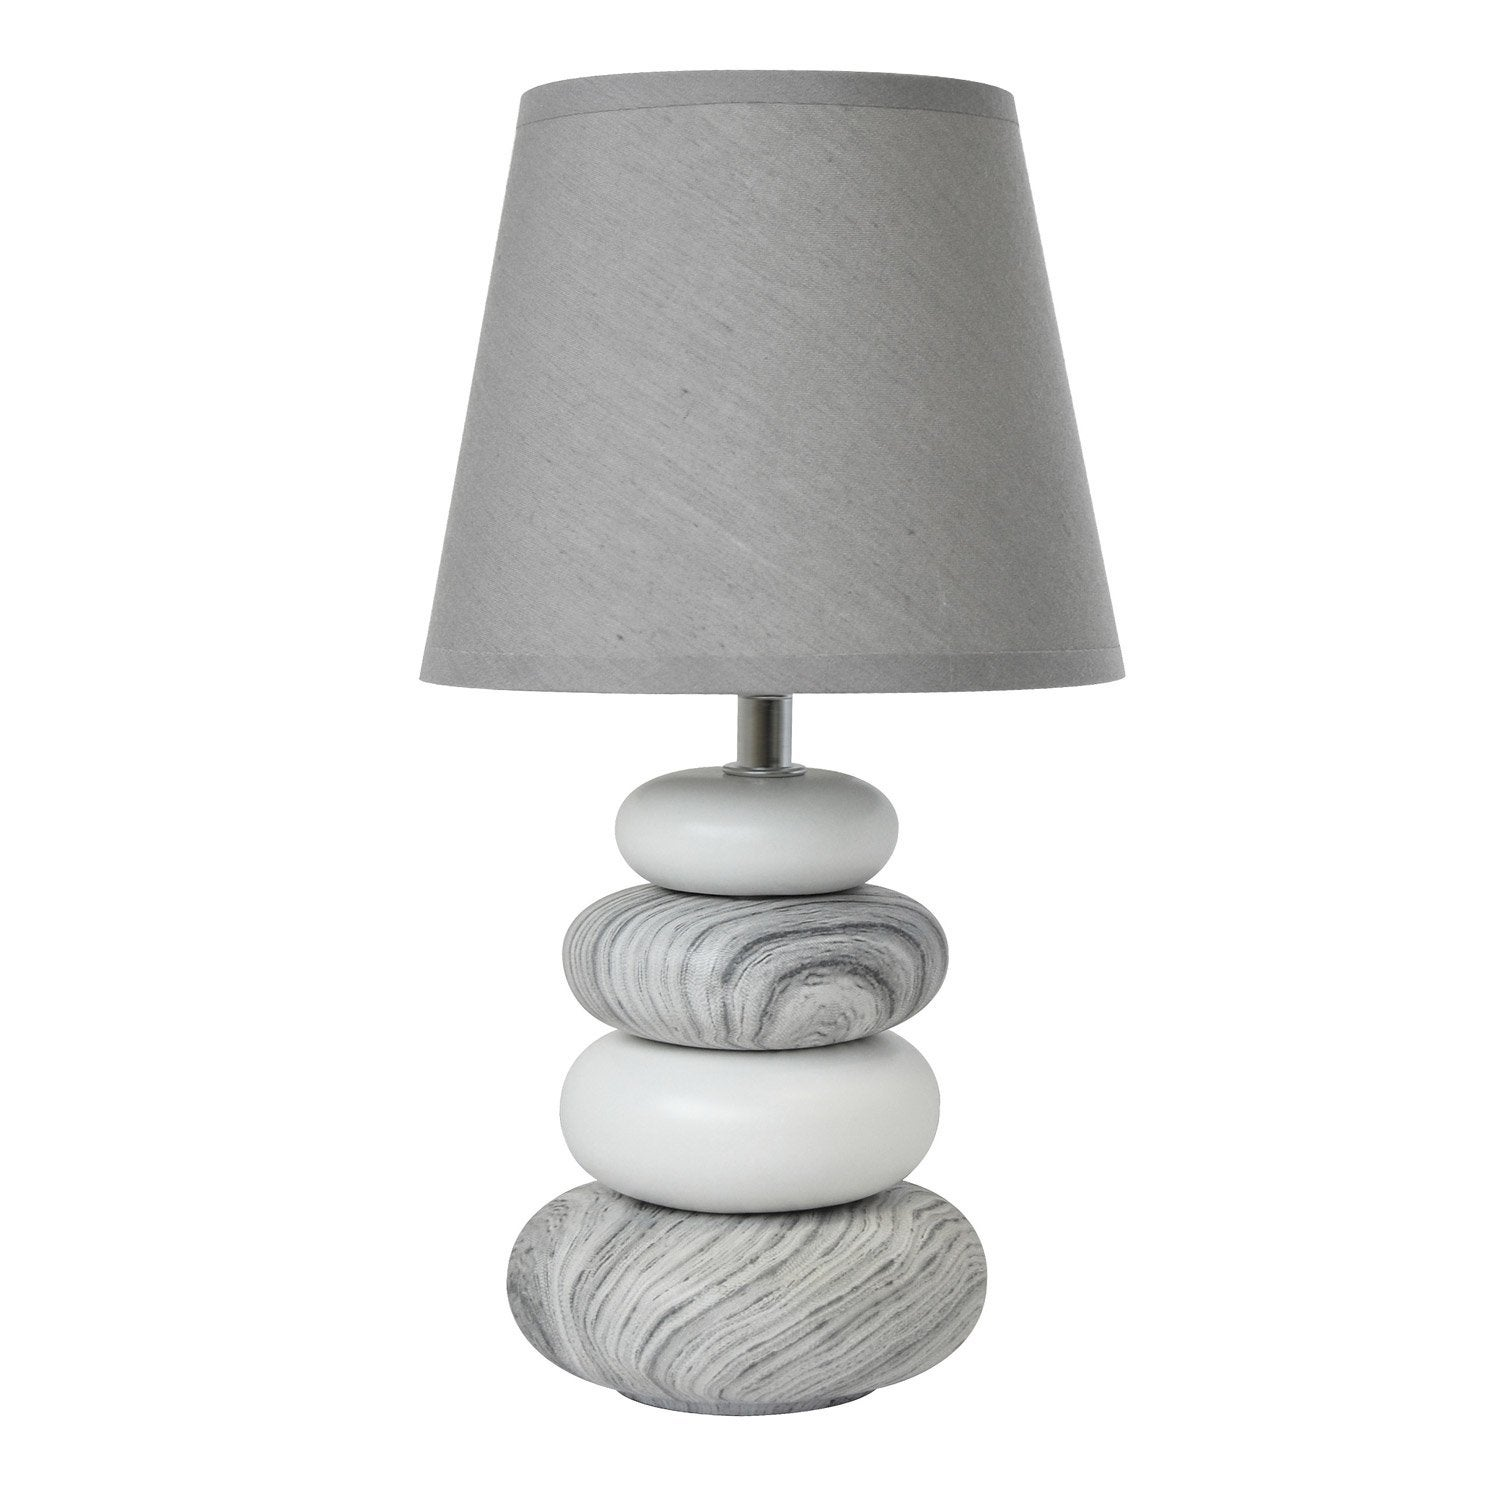 Lampe arizona seynave tissu gris 40 w leroy merlin for Lampe de chevet london